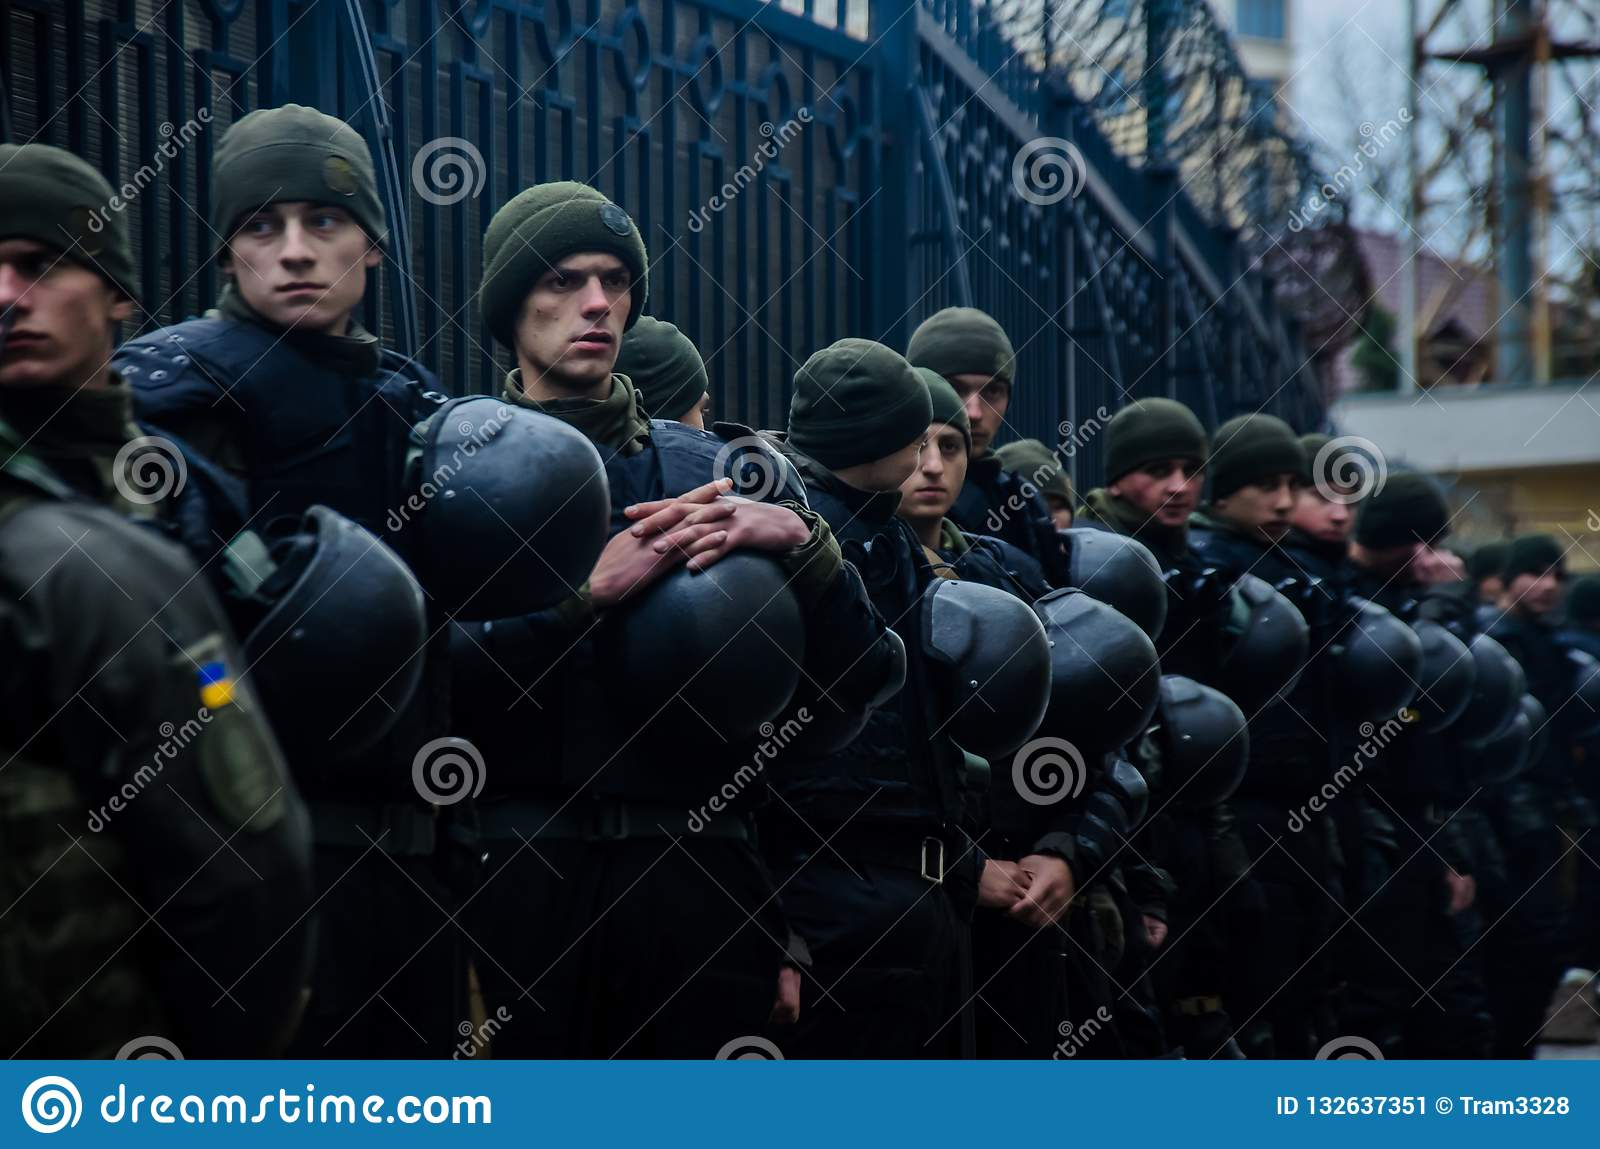 Protests of Ukrainian patriots near General Consulate of Russian Federation in Odessa against aggression of Russia